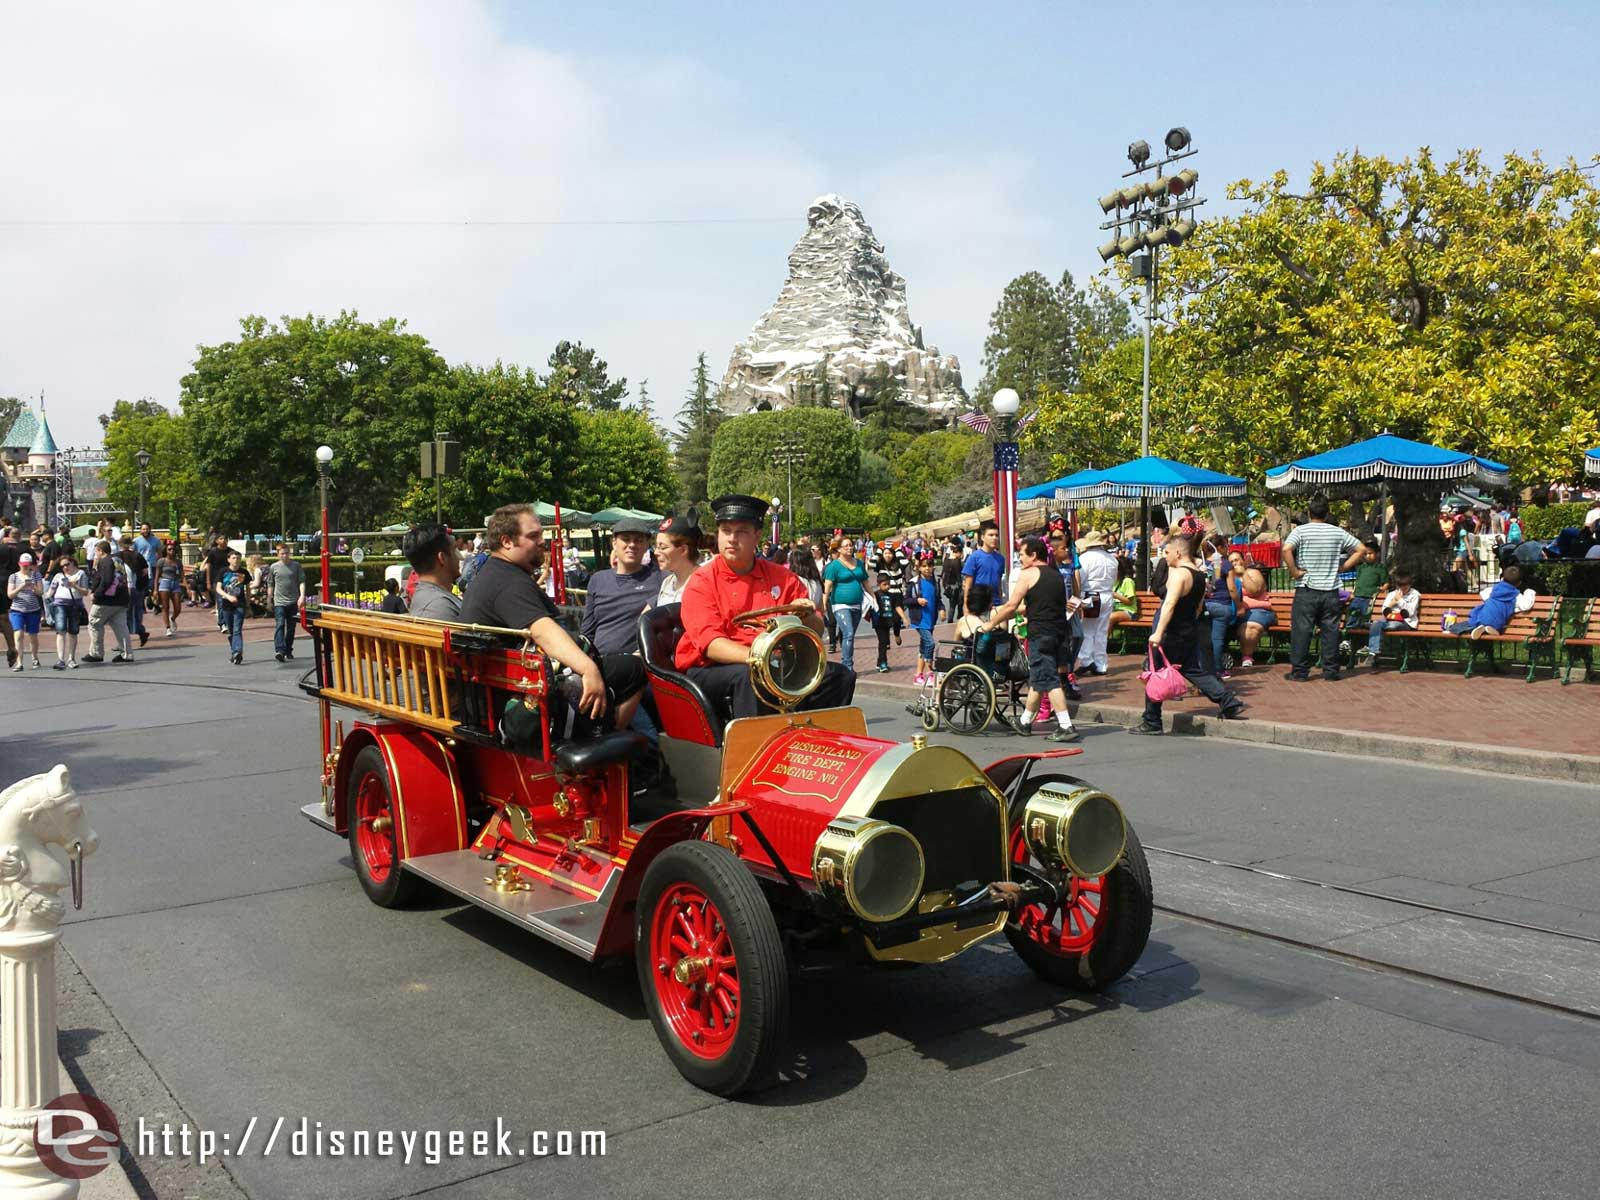 With the later parade times today Main Street vehicles still in service as of 3:20pm